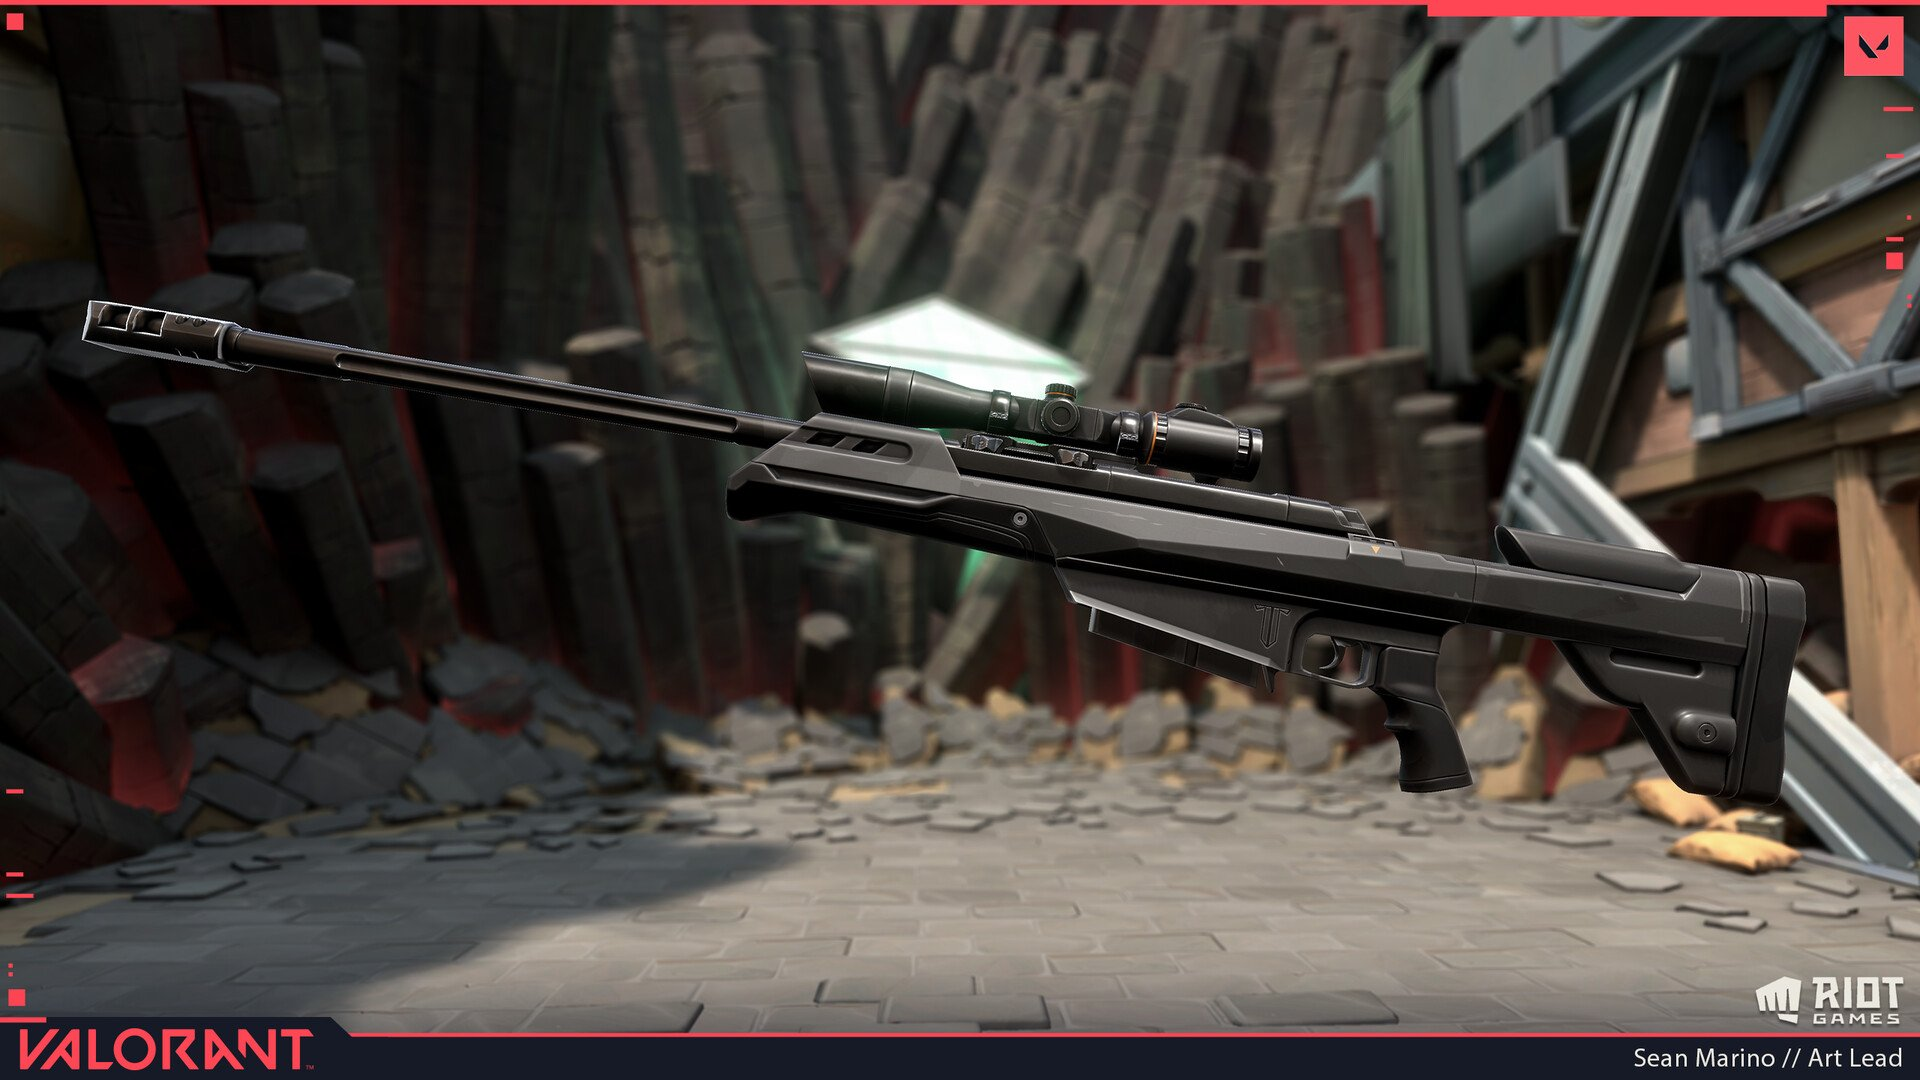 Operator Guide: How to use the powerful sniper rifle correctly